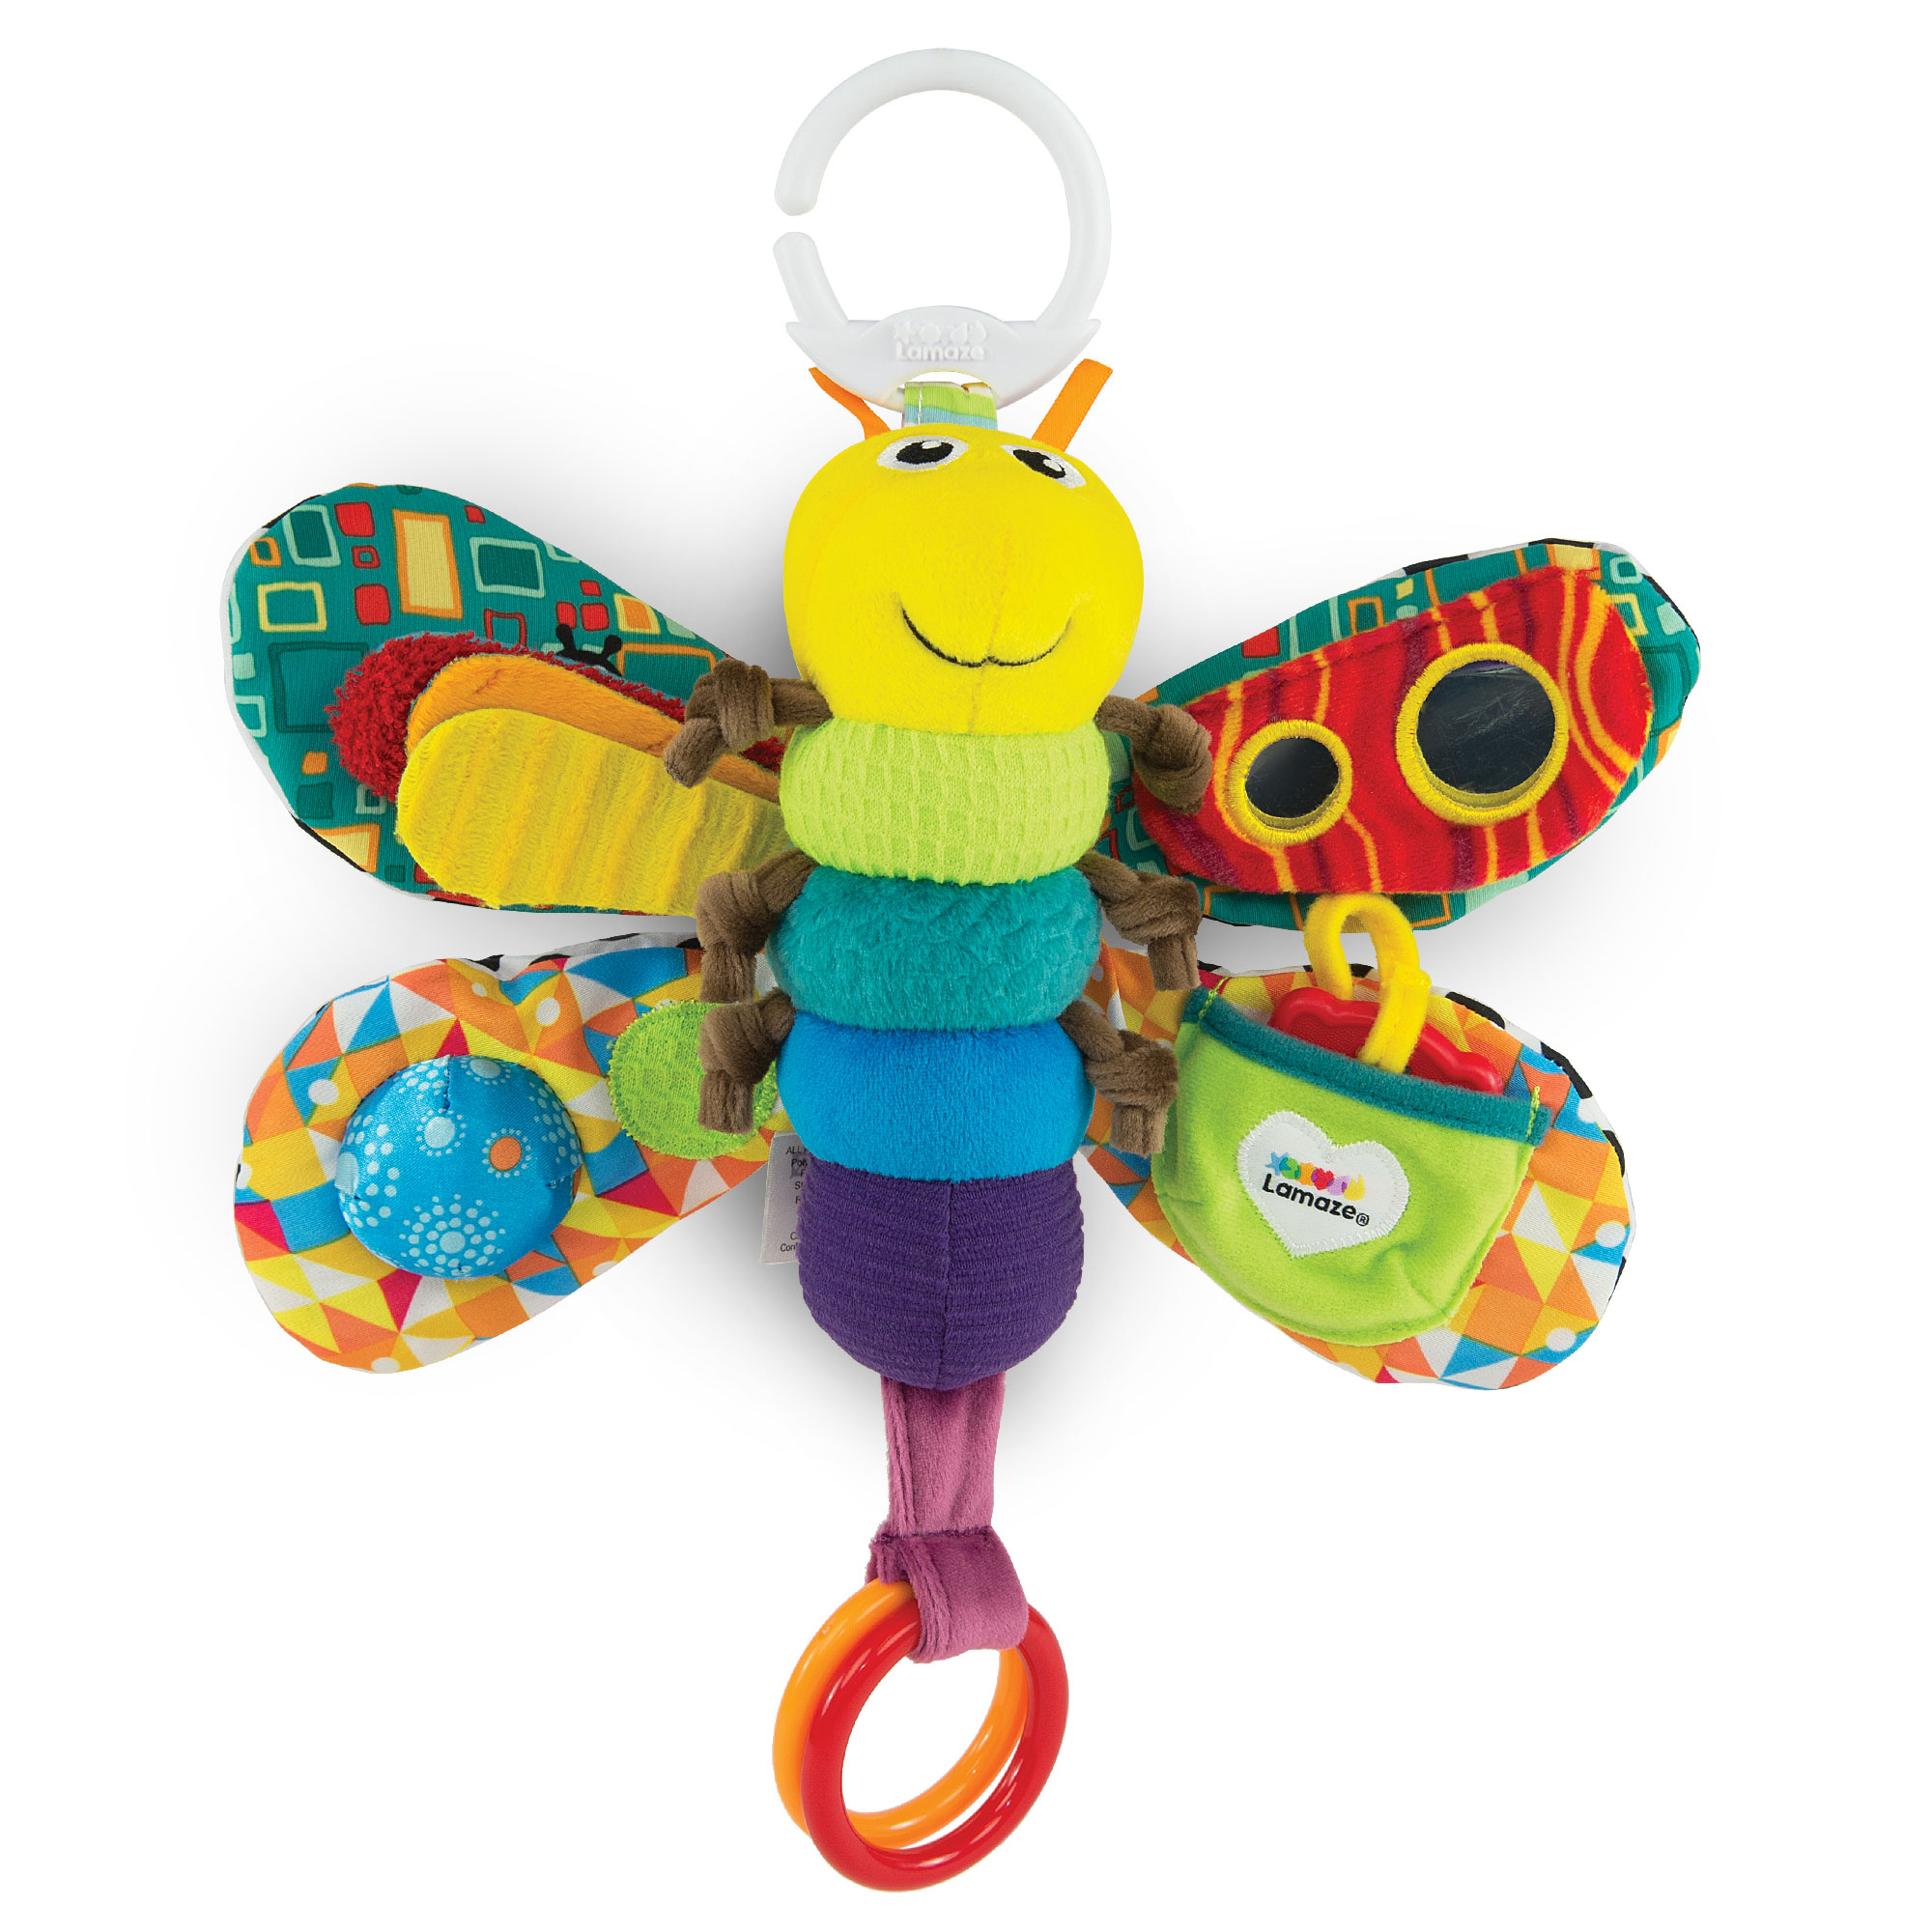 LAMAZE - Freddie The Firefly Infant Toy, Keeps Baby Engaged with Bright Colors, Textures, and a Self-Discovery Mirror, Clips to Carriers and Strollers